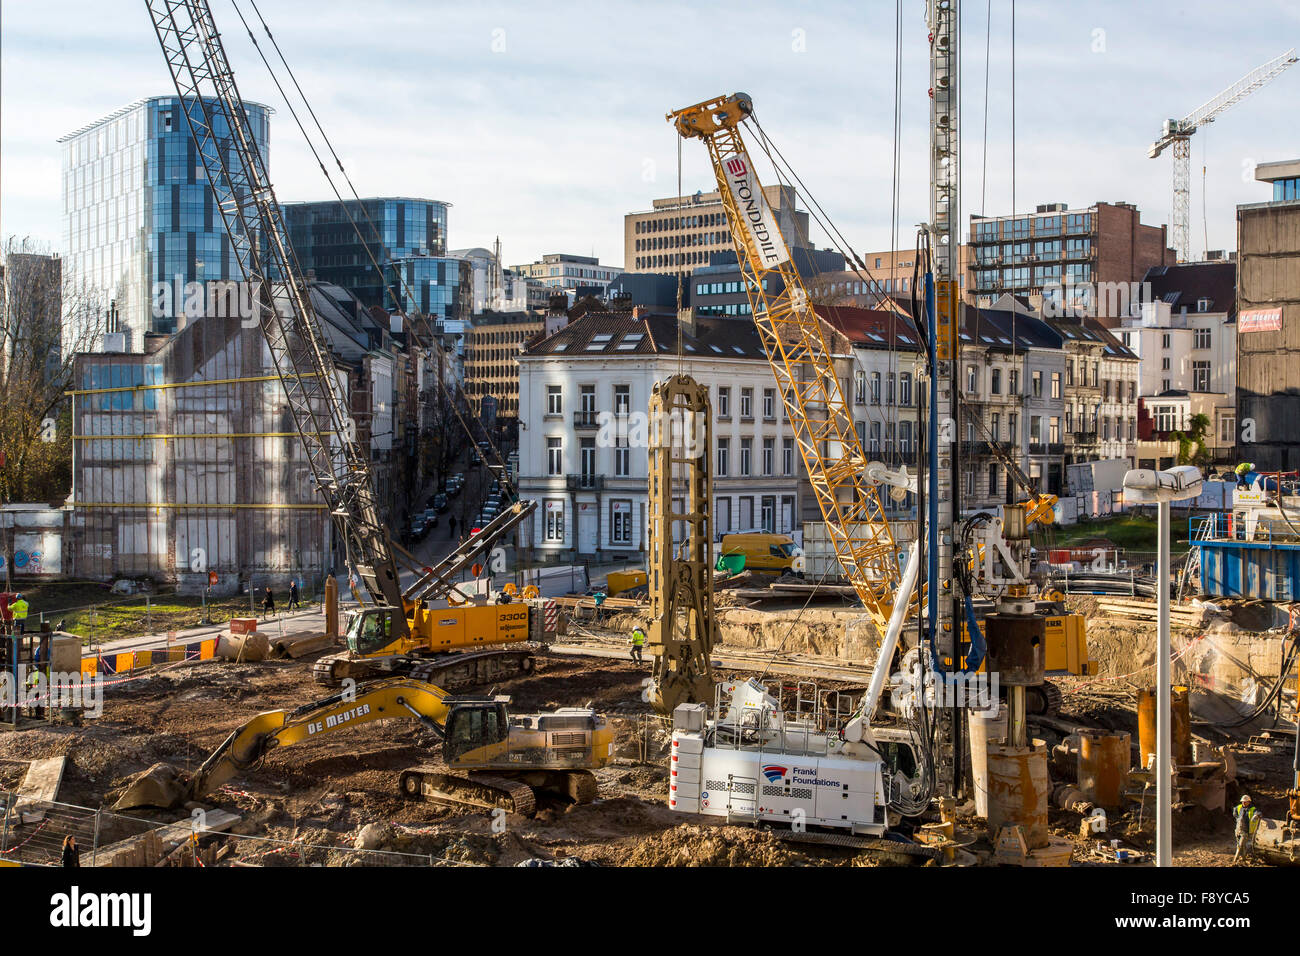 Construction site in the EU government district in Brussels, Belgium - Stock Image